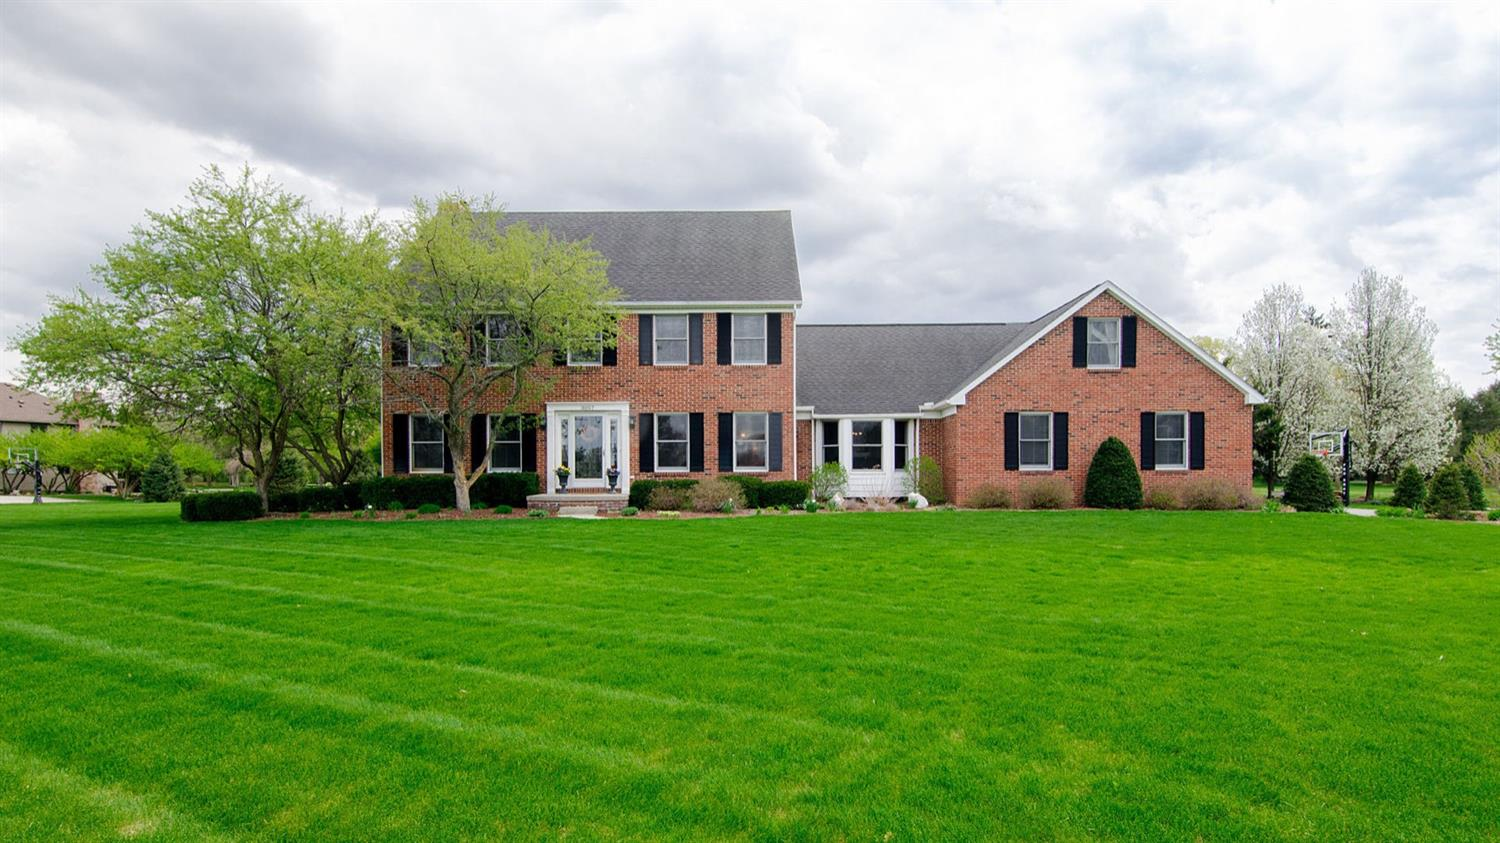 MLS# 3264383 - 3057  Grove Court Saline MI 48176